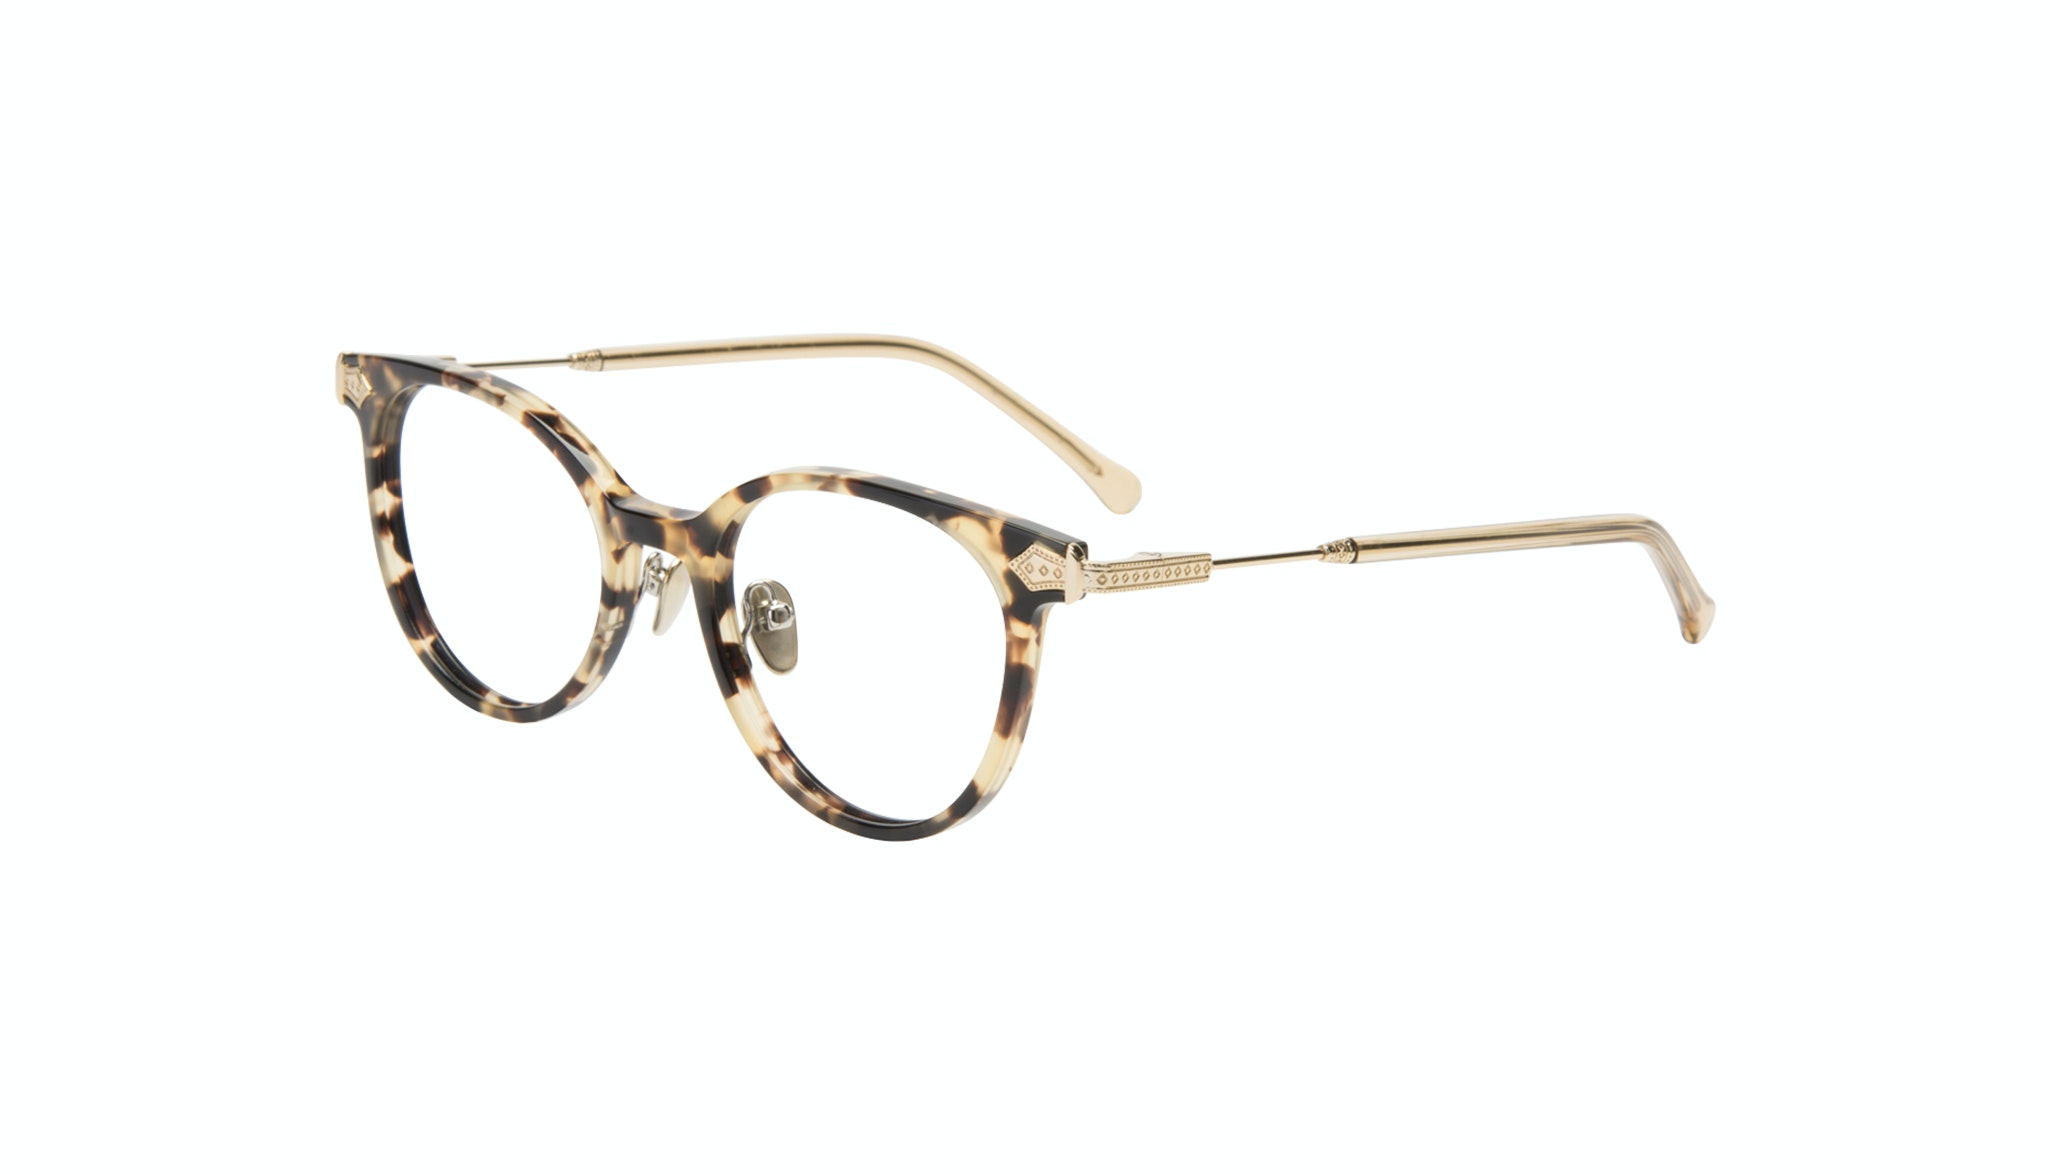 Affordable Fashion Glasses Round Eyeglasses Women Gem Golden Chip Tilt